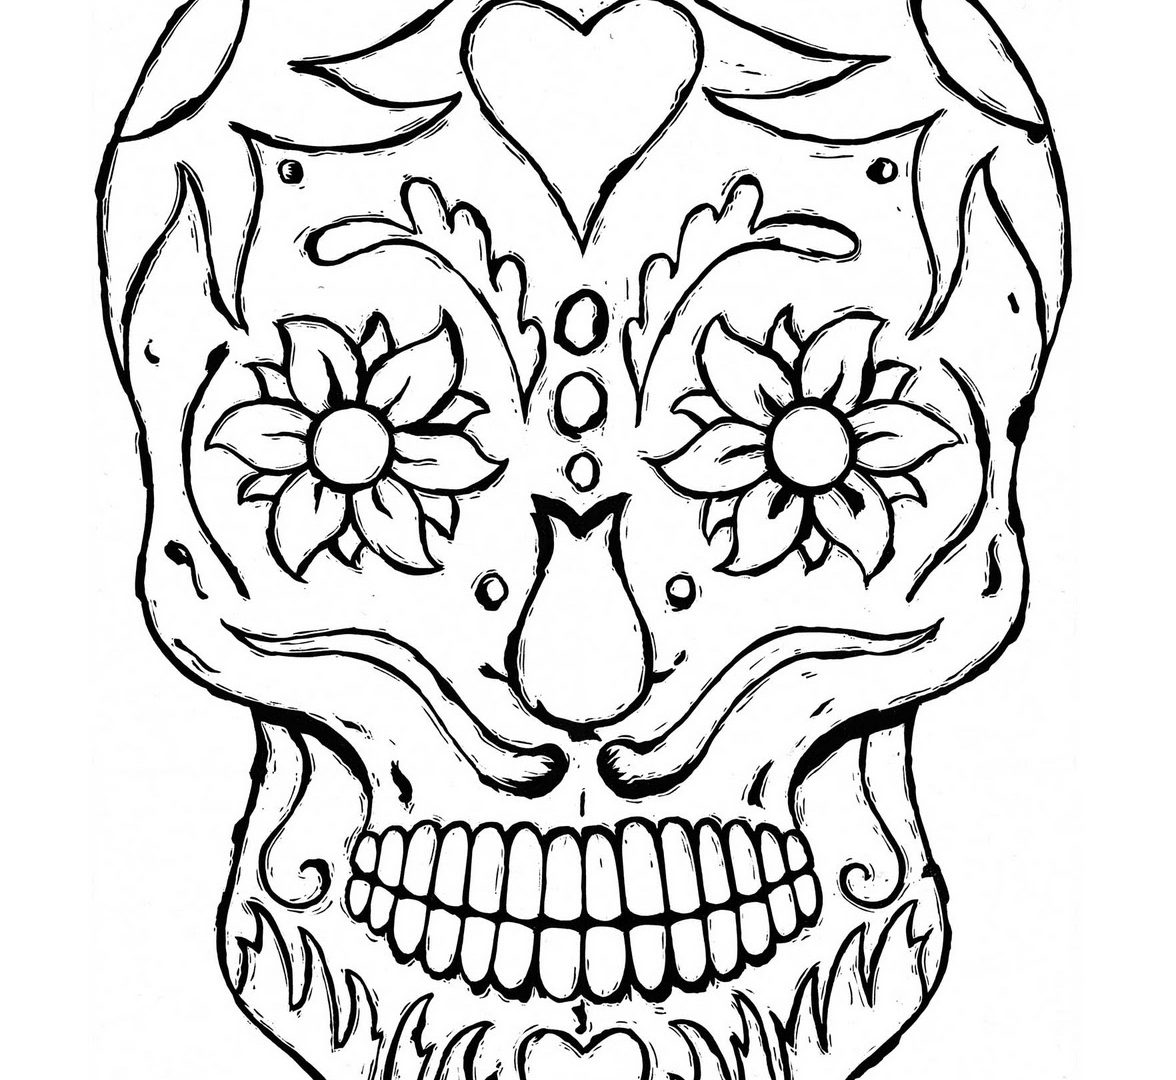 liger coloring pages liger coloring pages at getdrawings free download liger coloring pages